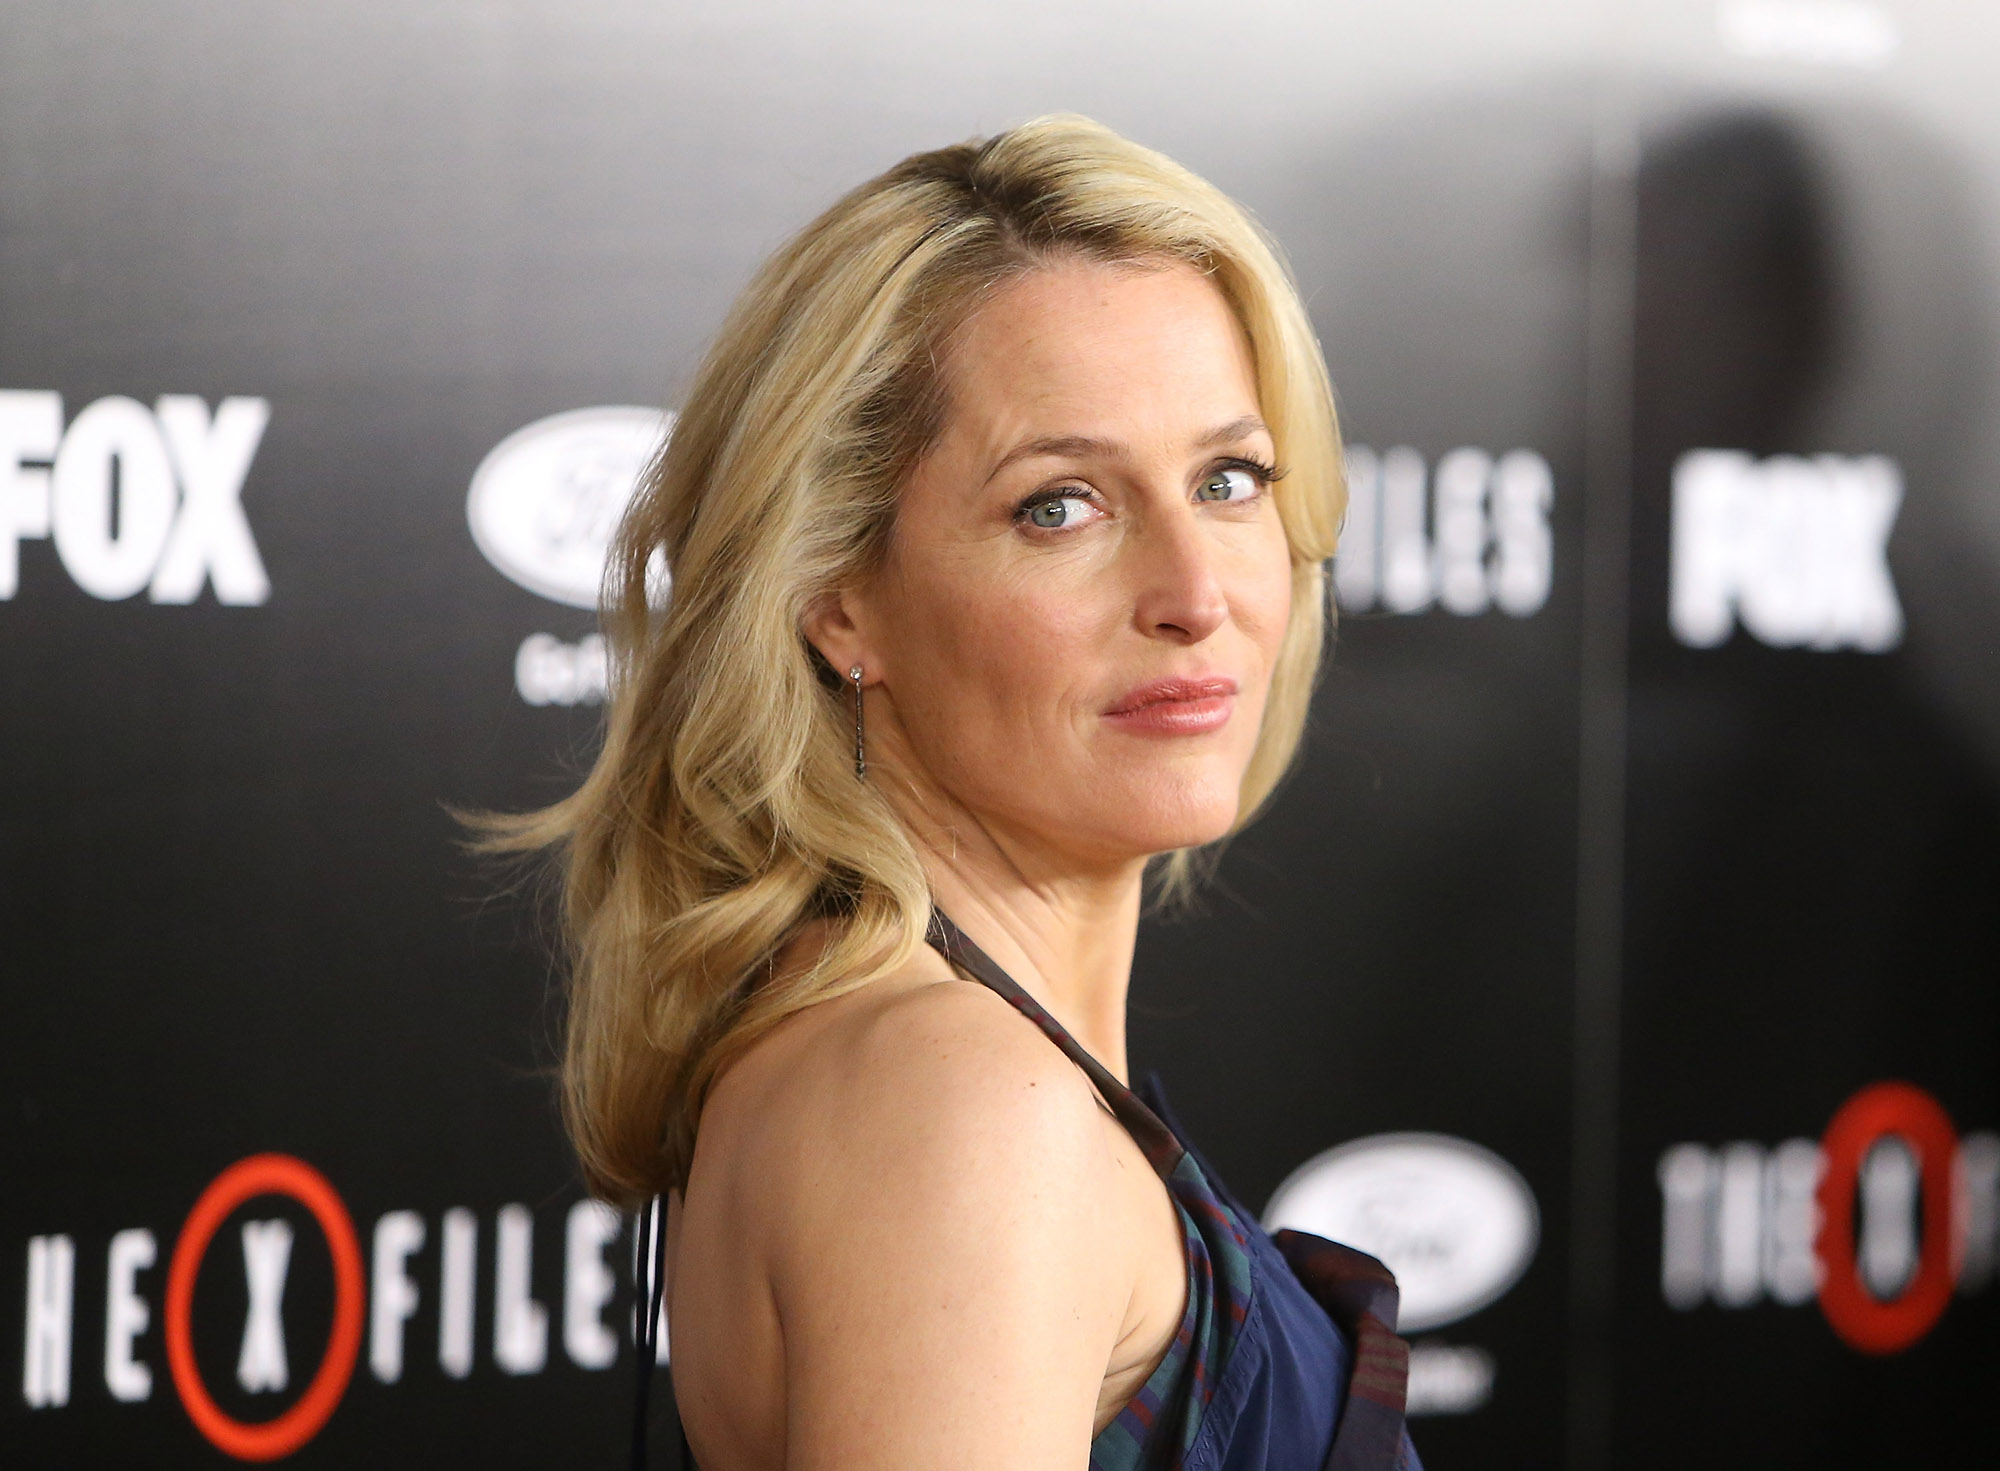 LOS ANGELES, CA - JANUARY 12:  Gillian Anderson arrives at the Los Angeles premiere of Fox's  The X-Files  held at California Science Center on January 12, 2016 in Los Angeles, California.  (Photo by Michael Tran/FilmMagic)